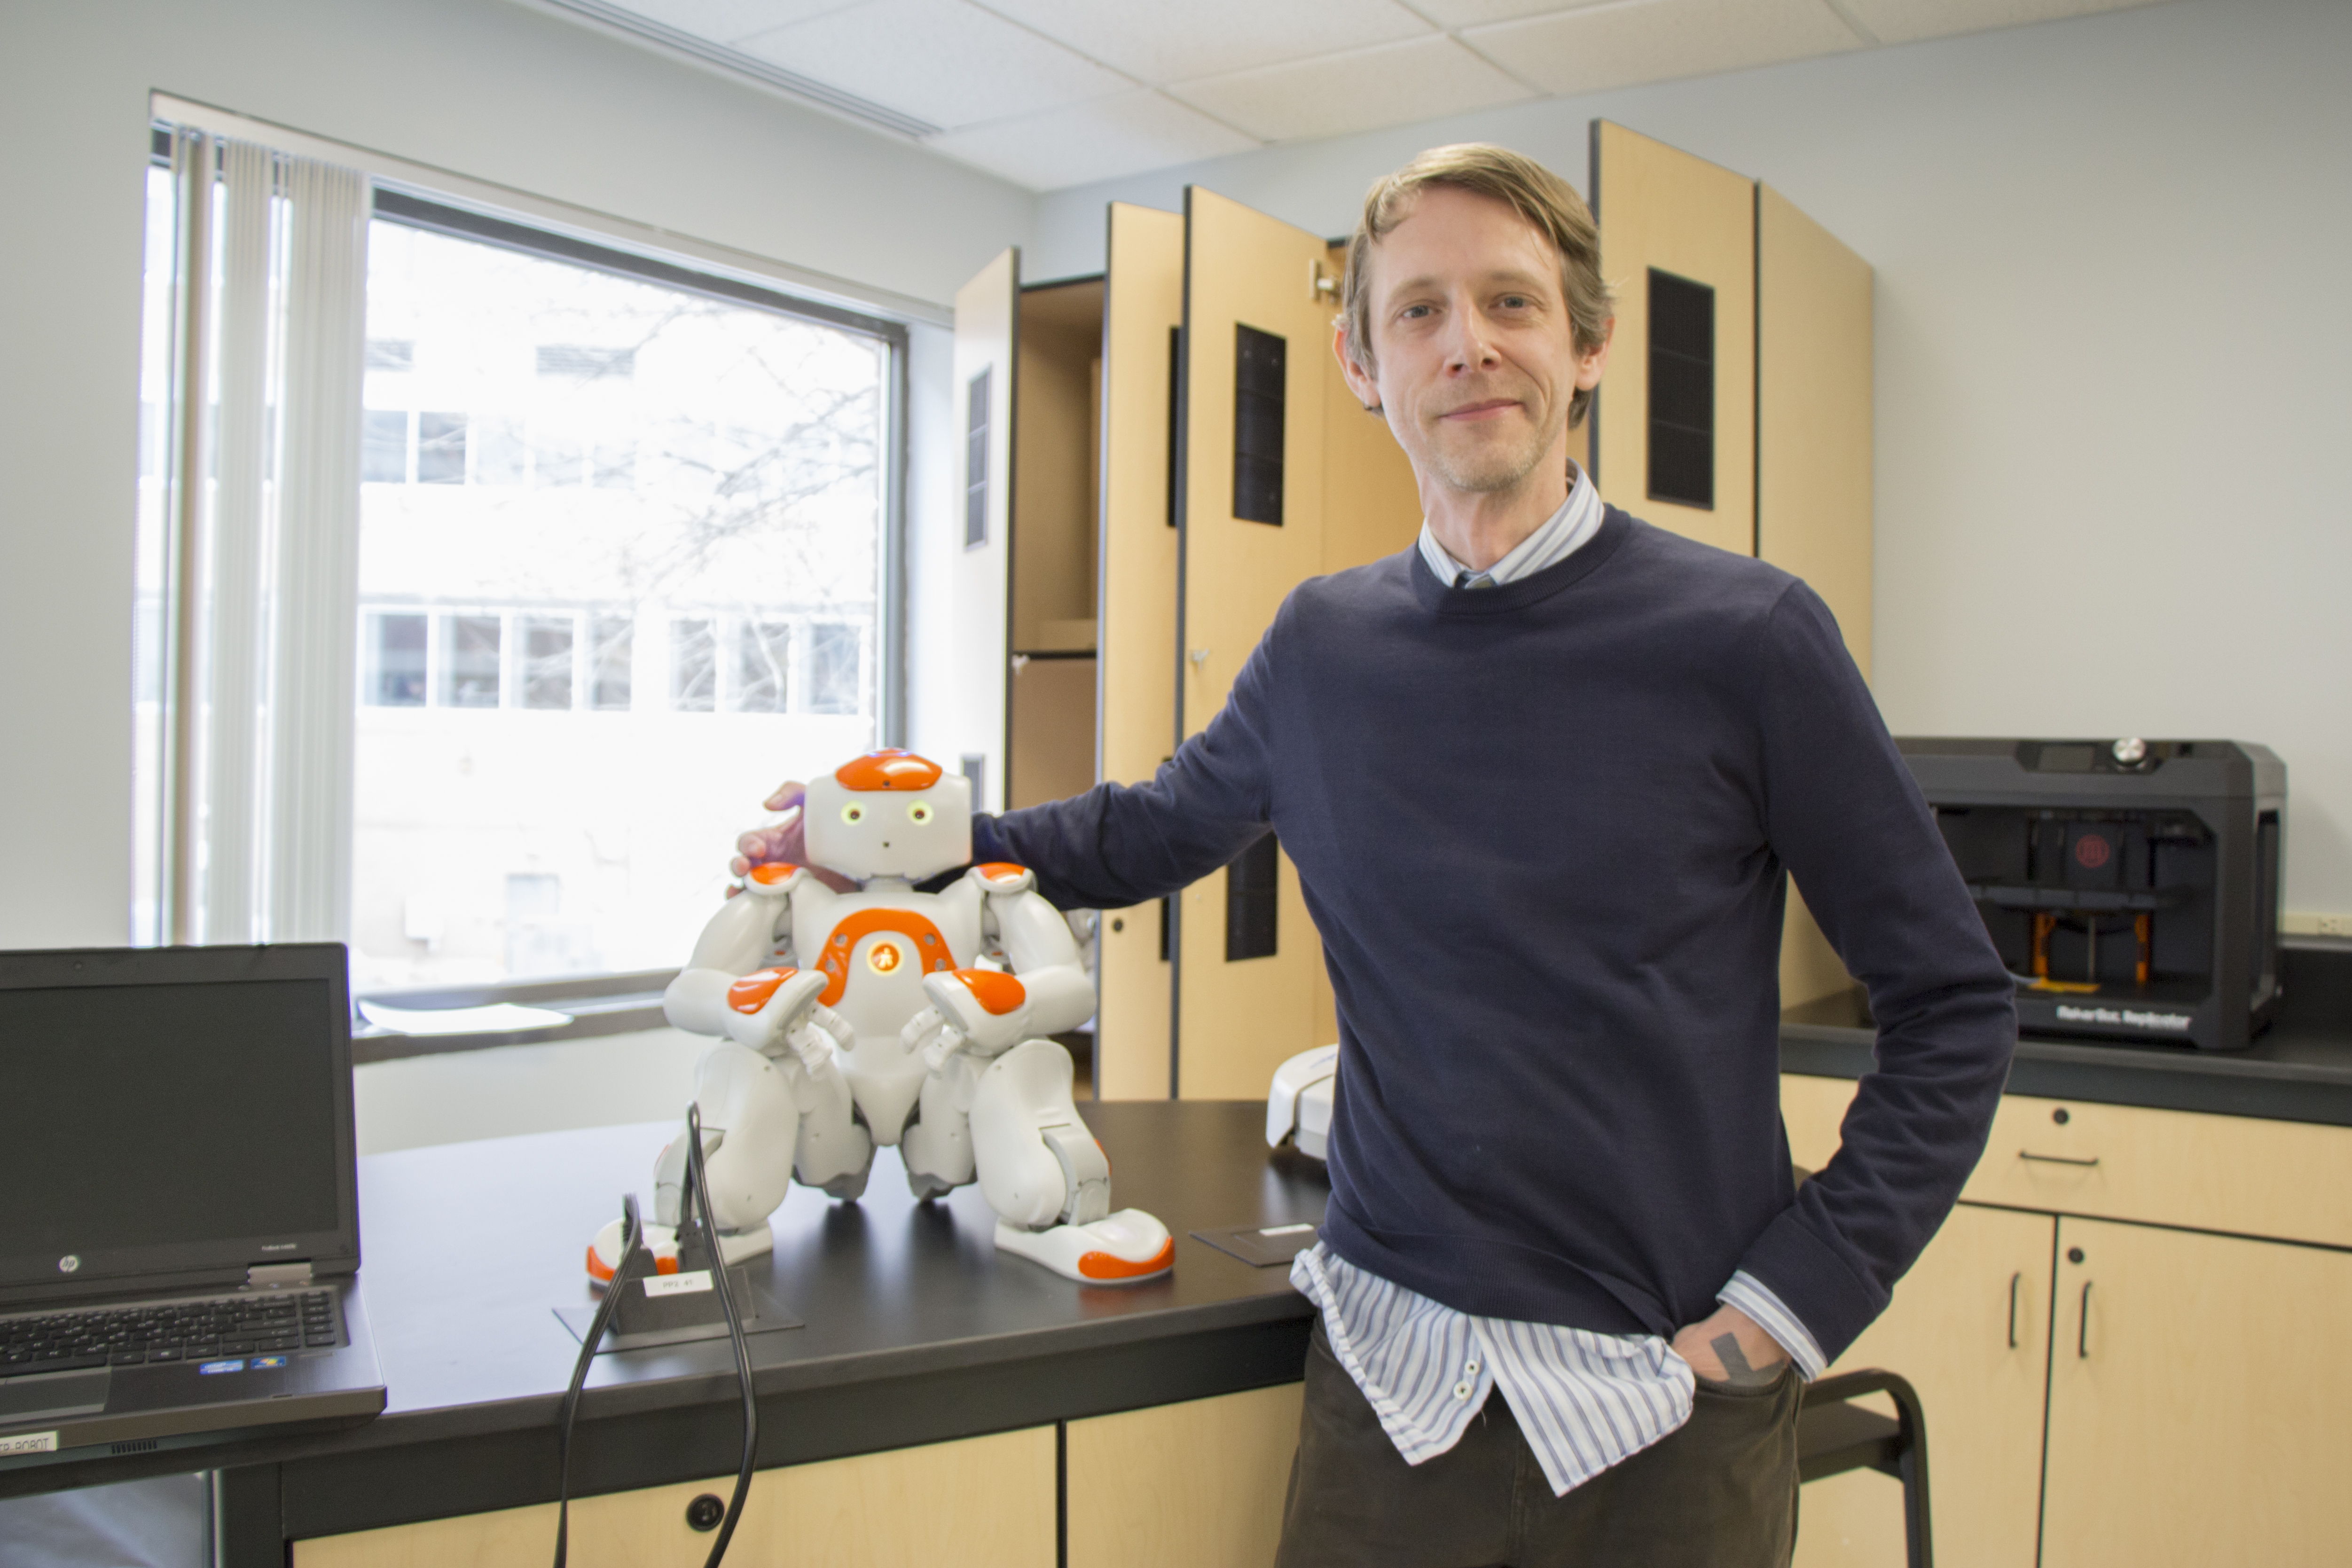 Dr. Pitts with Jingles the robot